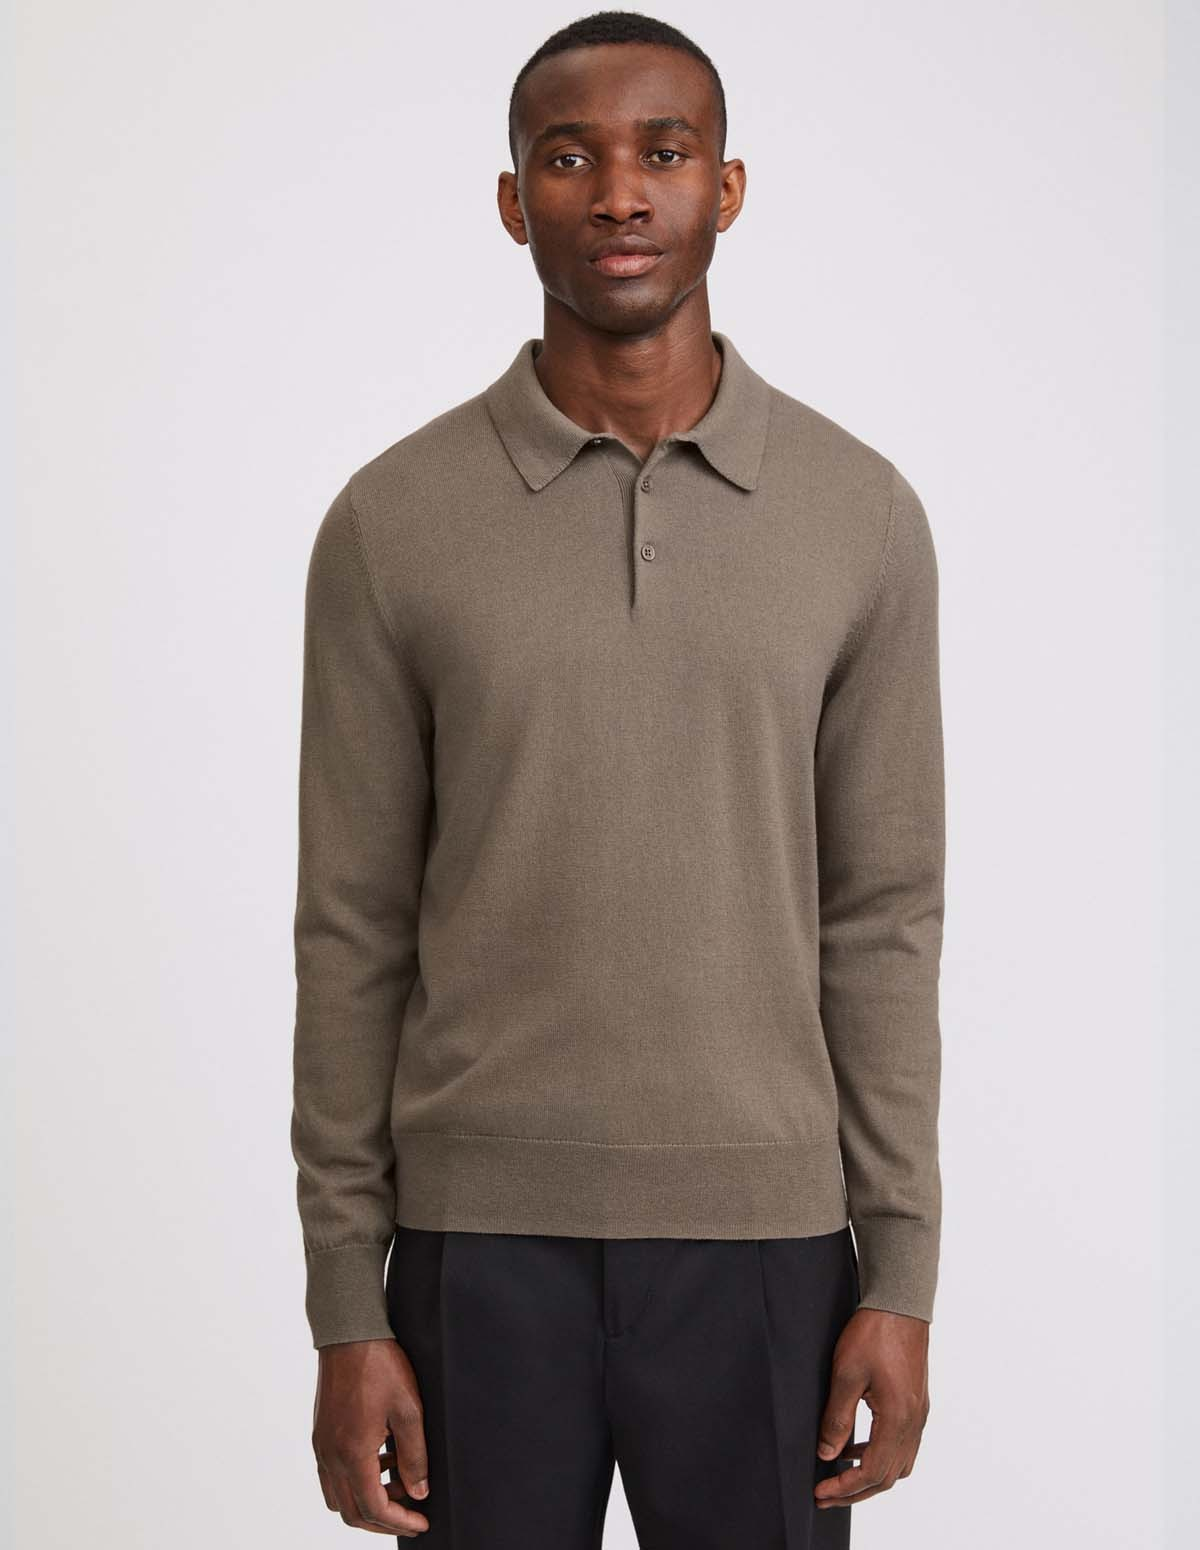 Fk M Knitted Polo Shirt - DARK TAUPE